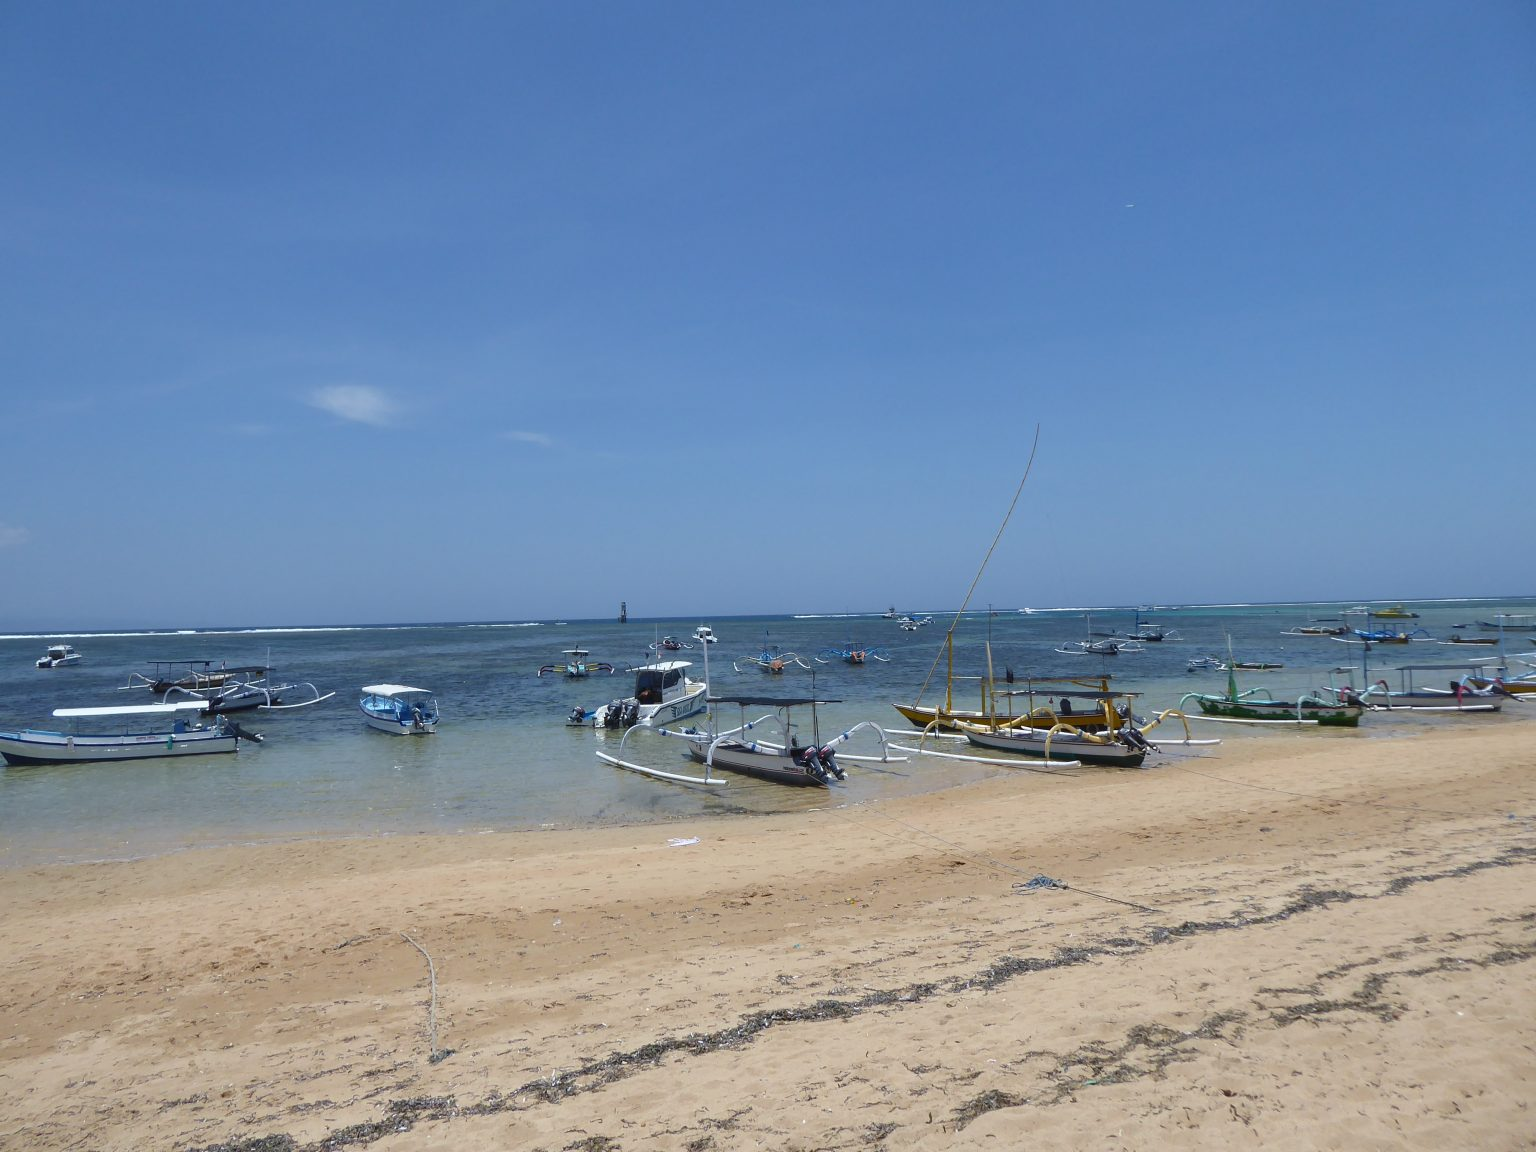 Sanur Beach with boats parked in the water - Backpacking Bali